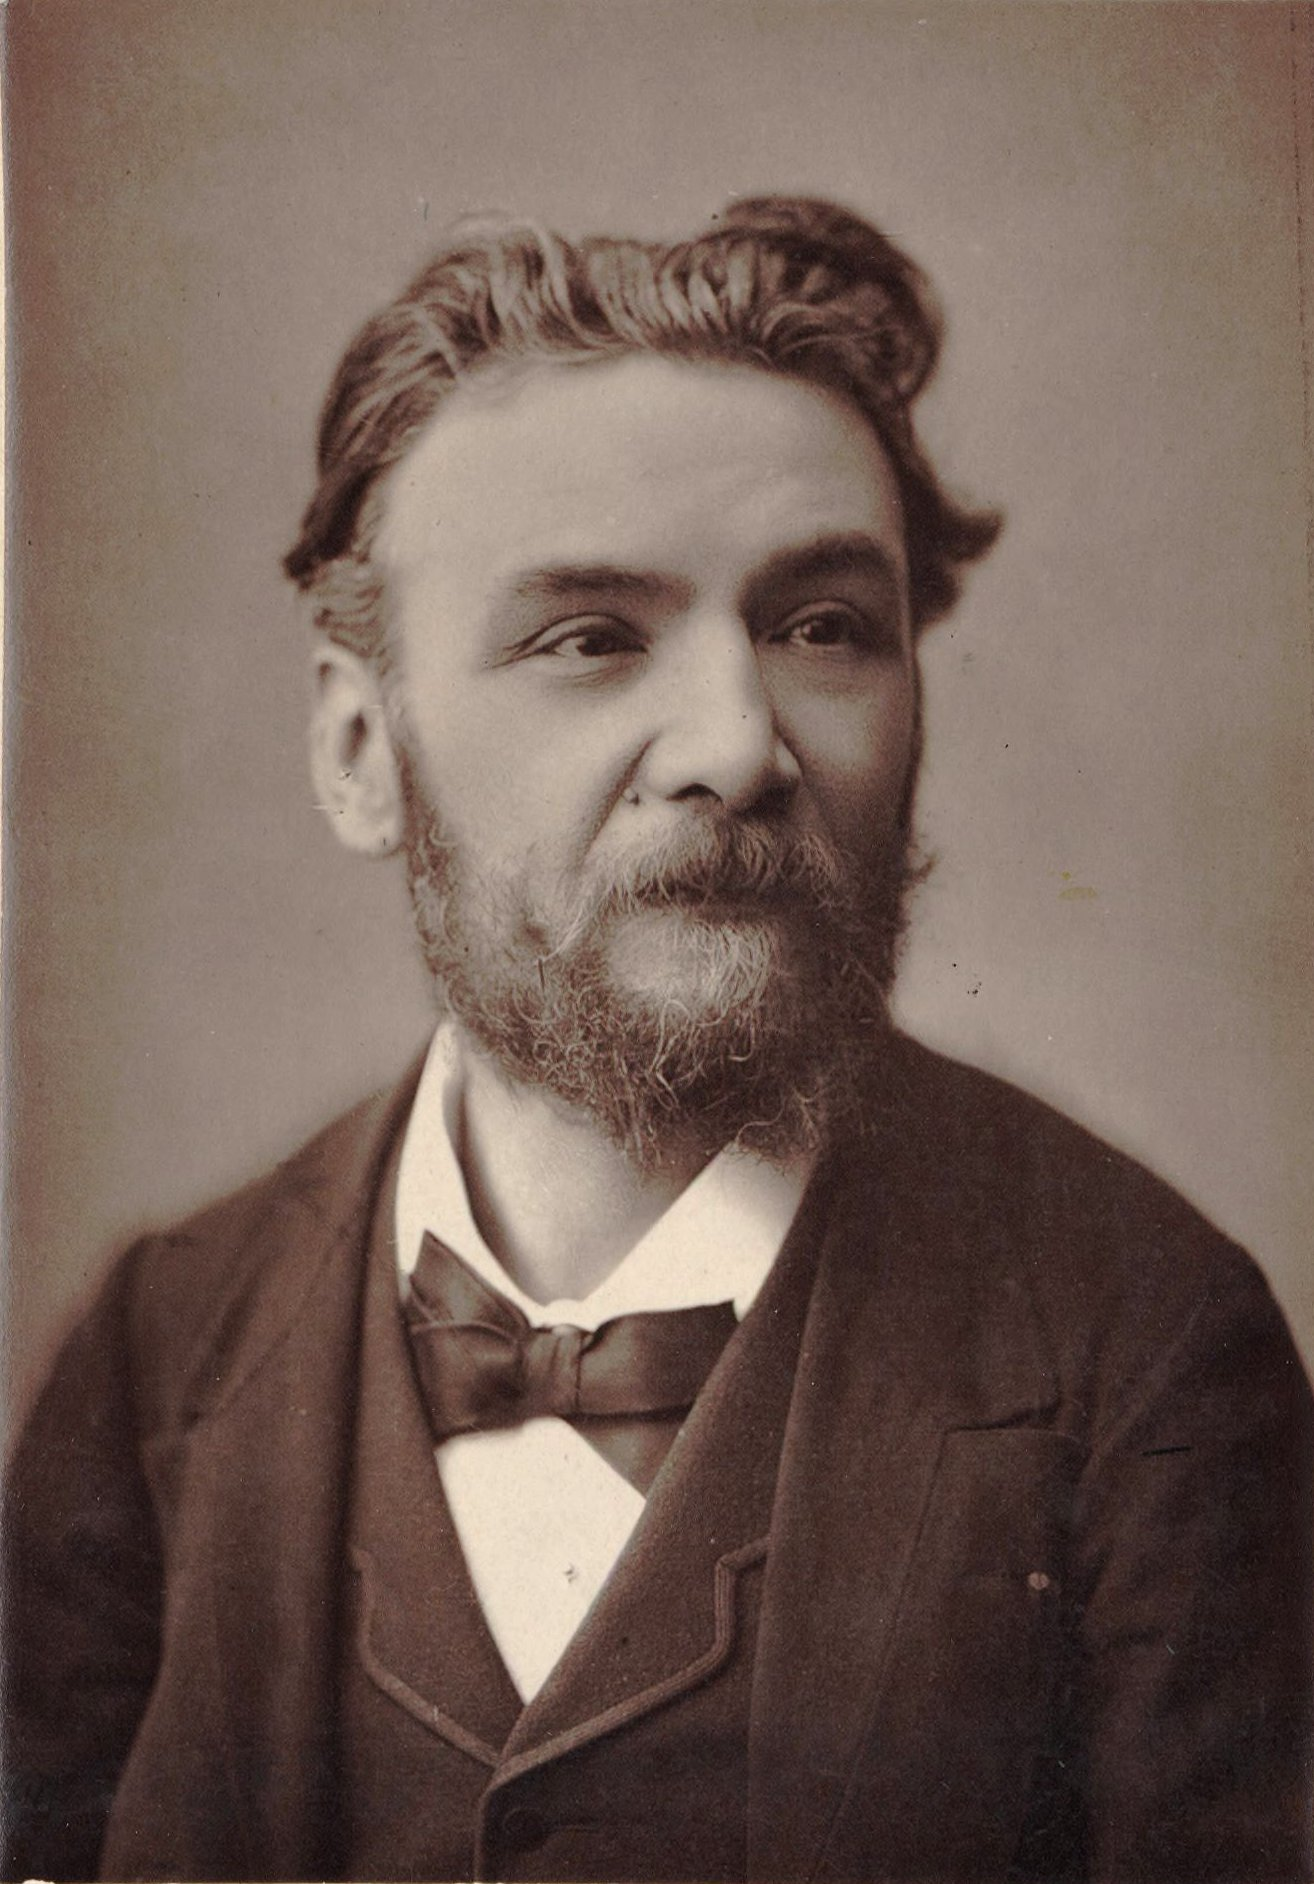 Ernest Guiraud (1837-1892), French composer